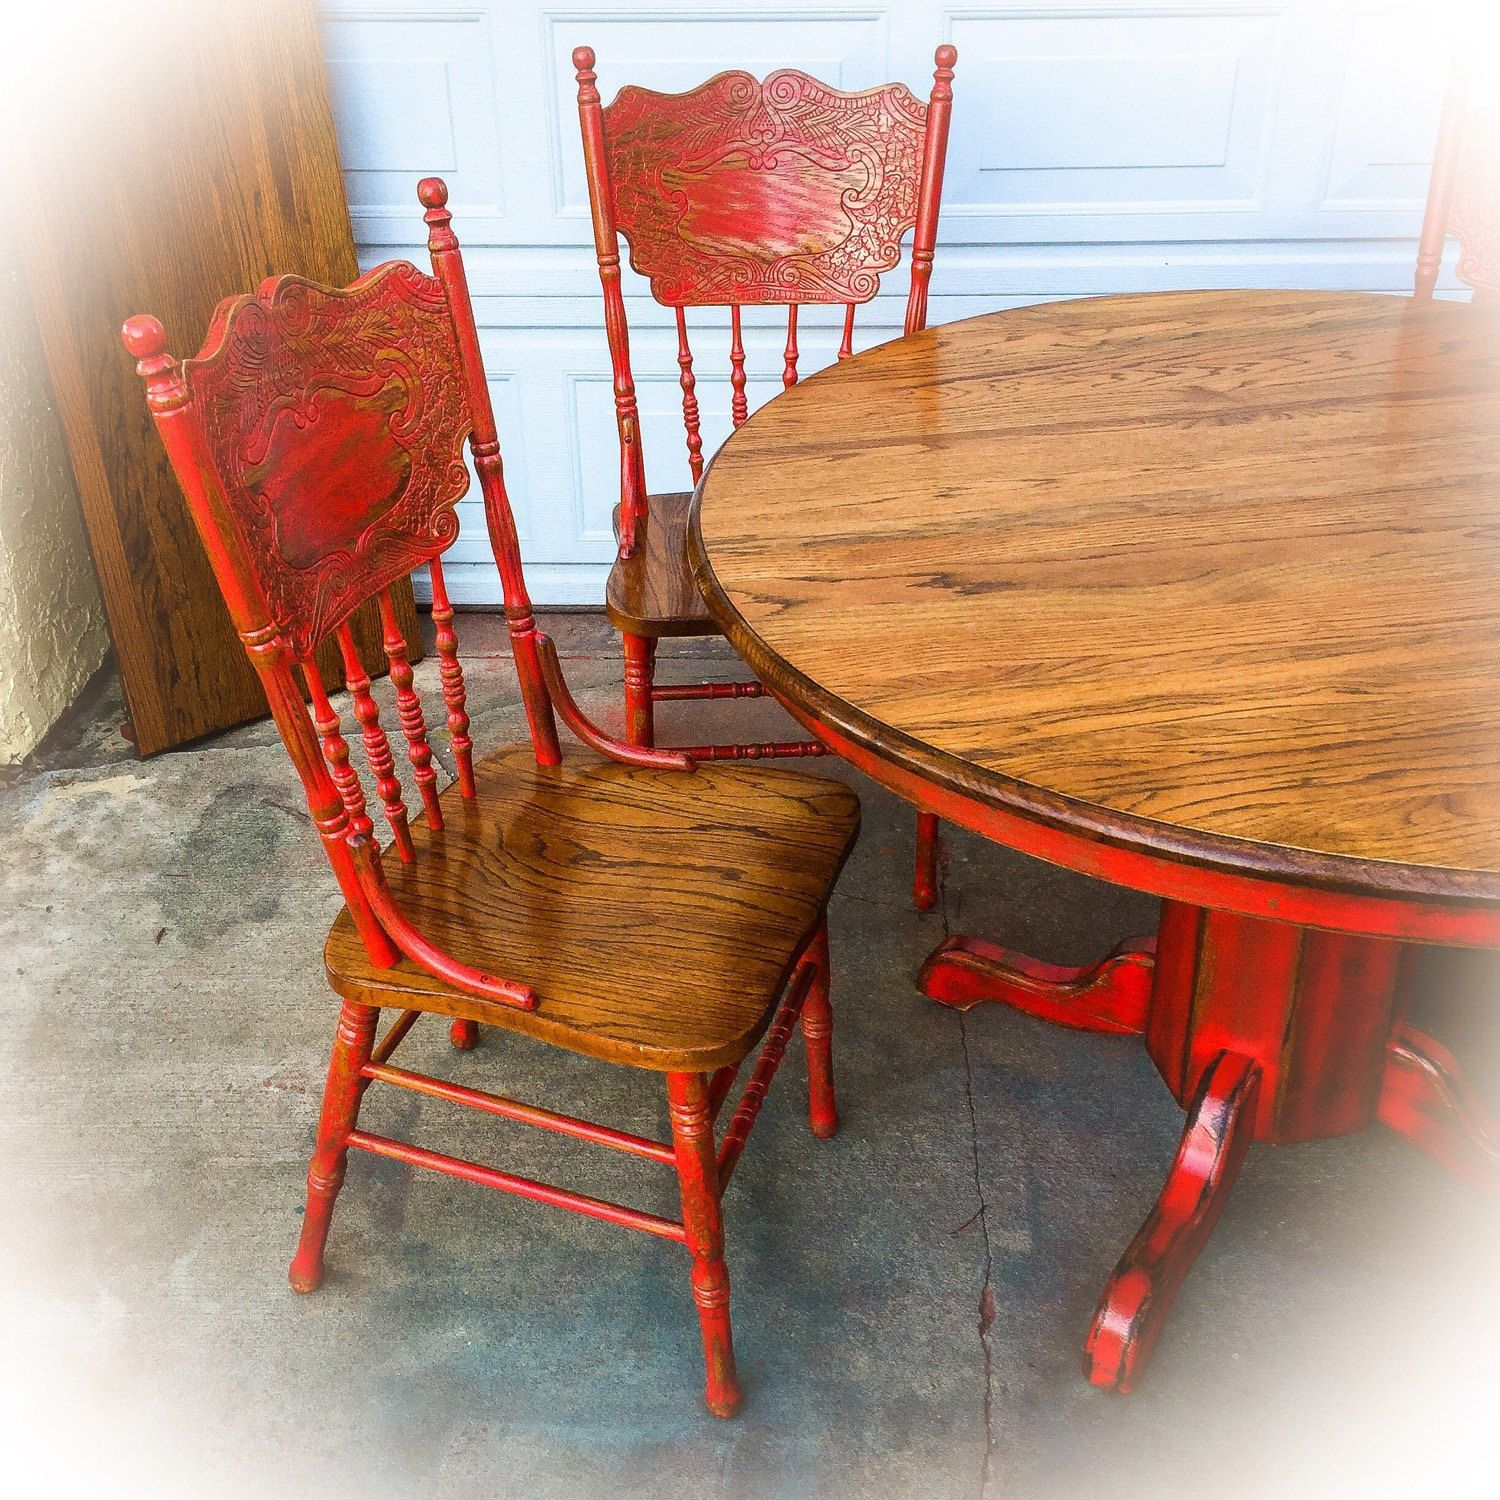 Farmhouse Kitchen Table And Chairs W Leaf Oak Dining Room Red Shabby Chic Set Round French Country